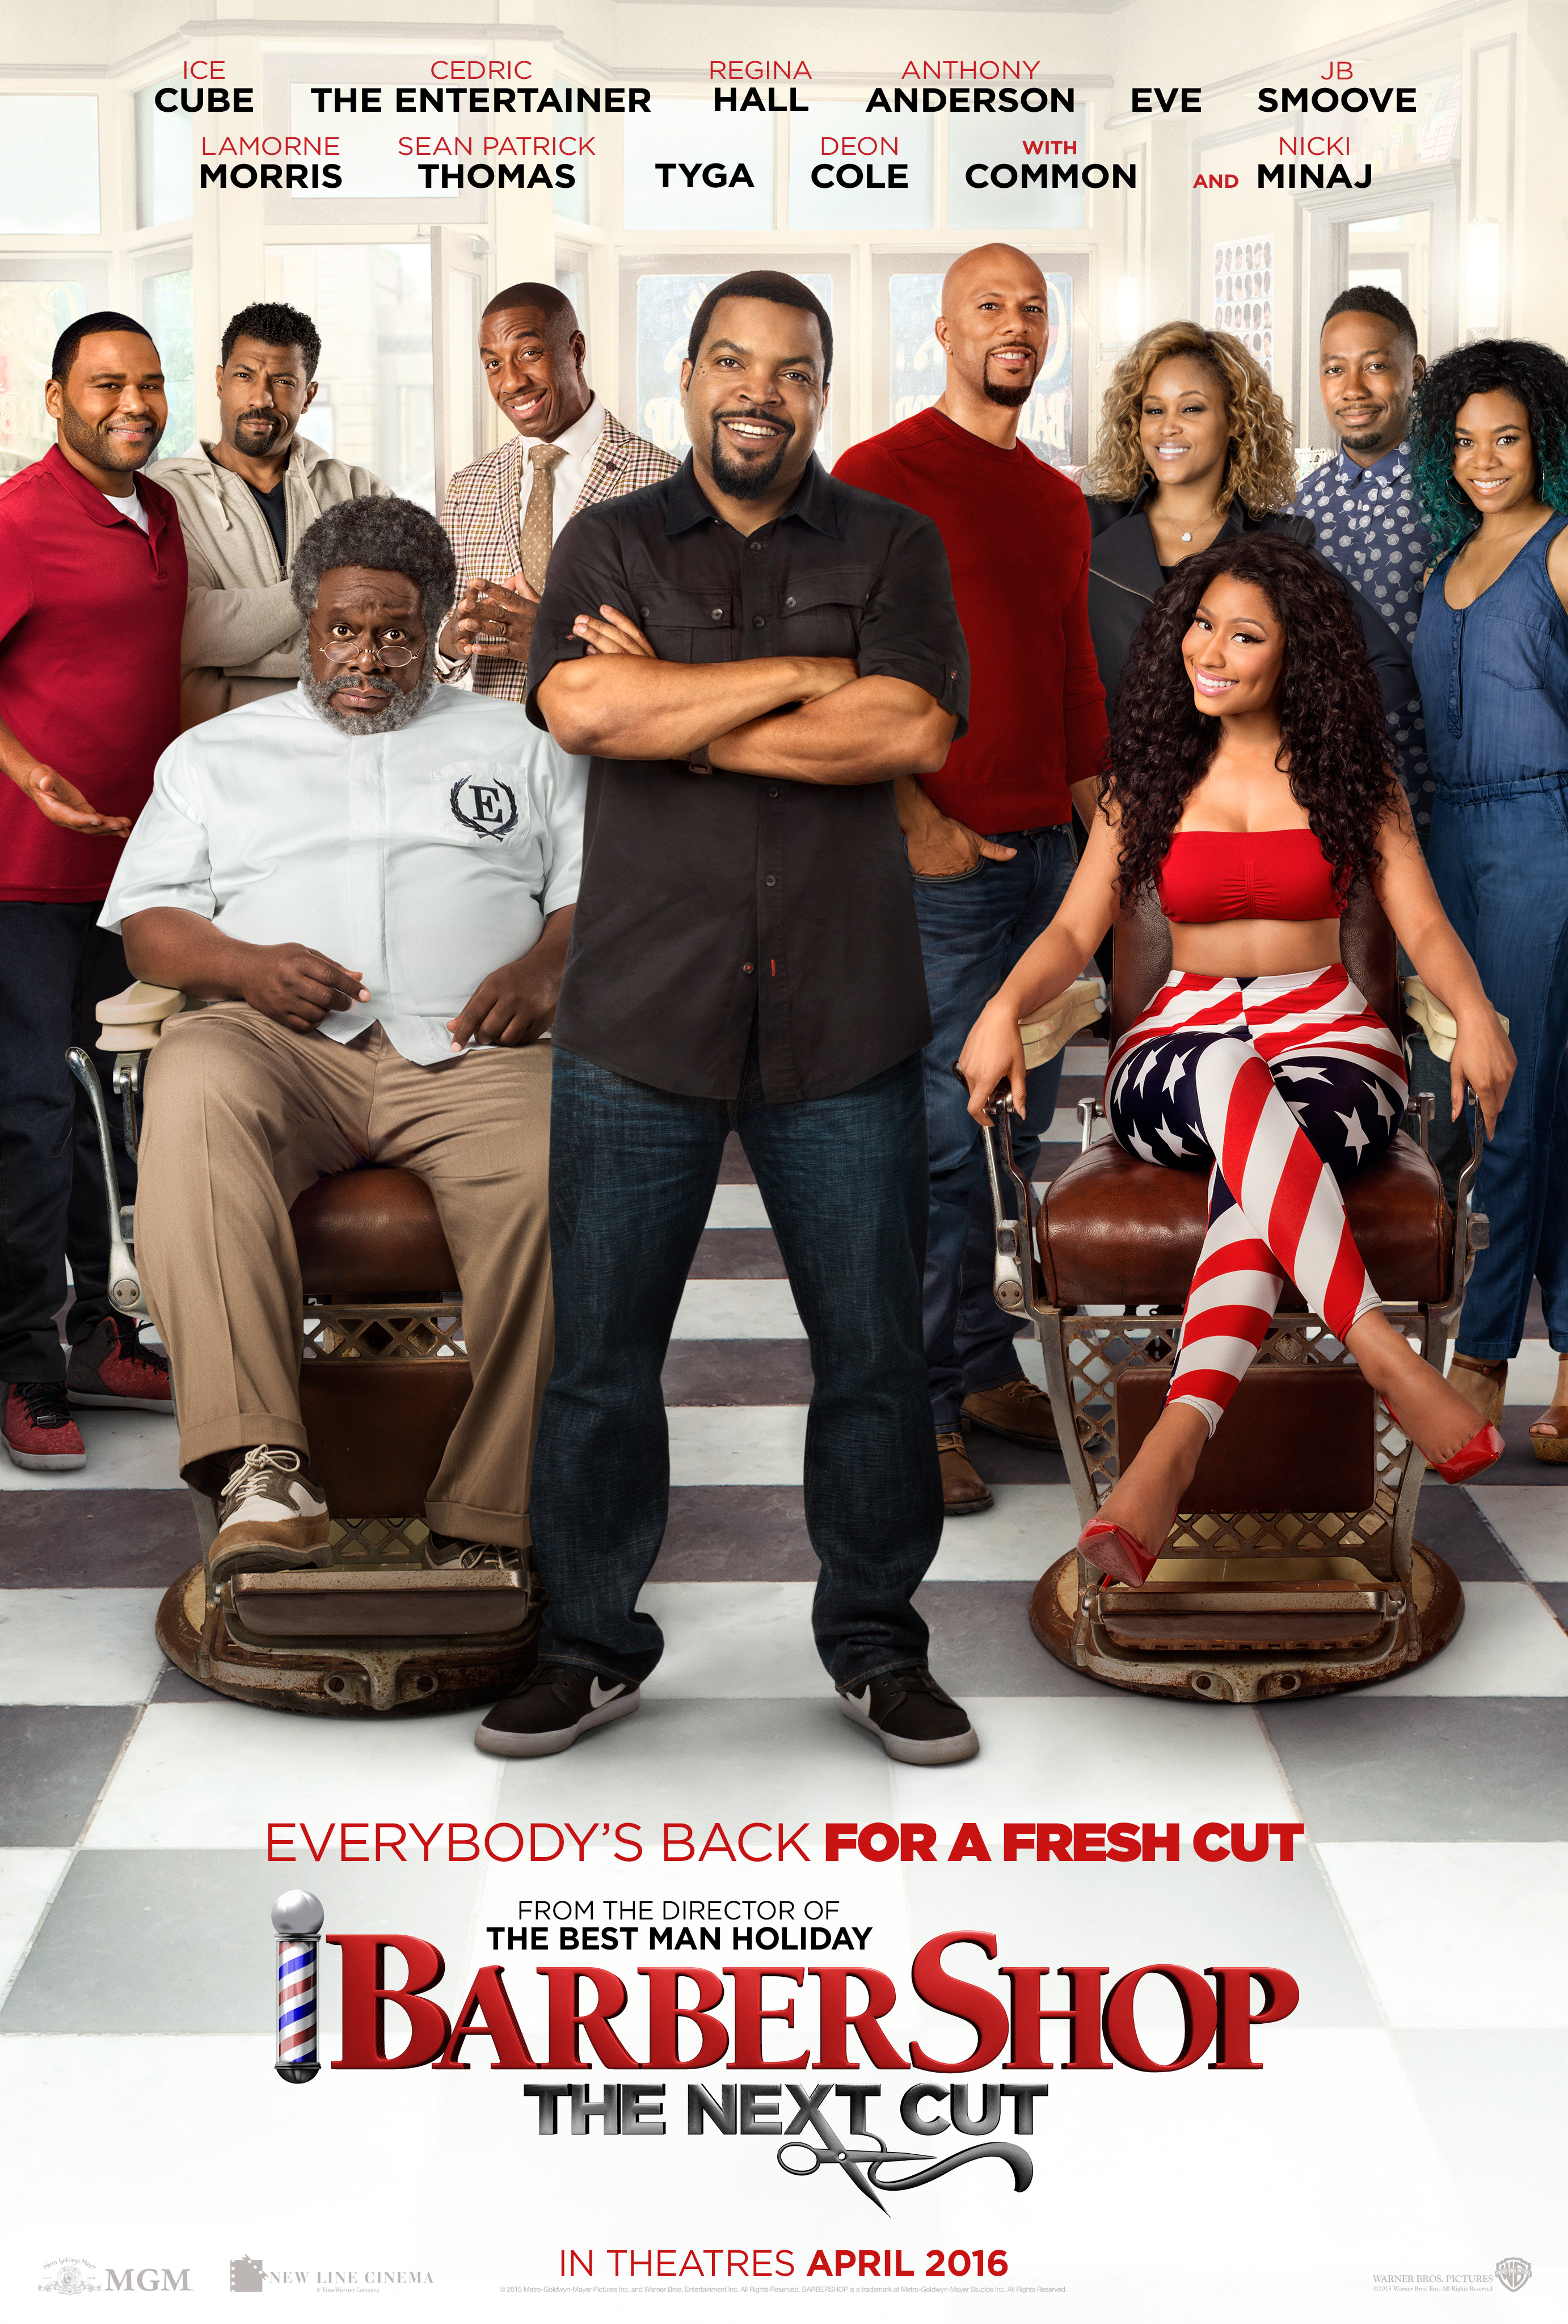 Barbershop: The Next Cut (2016) - DVD PLANET STORE